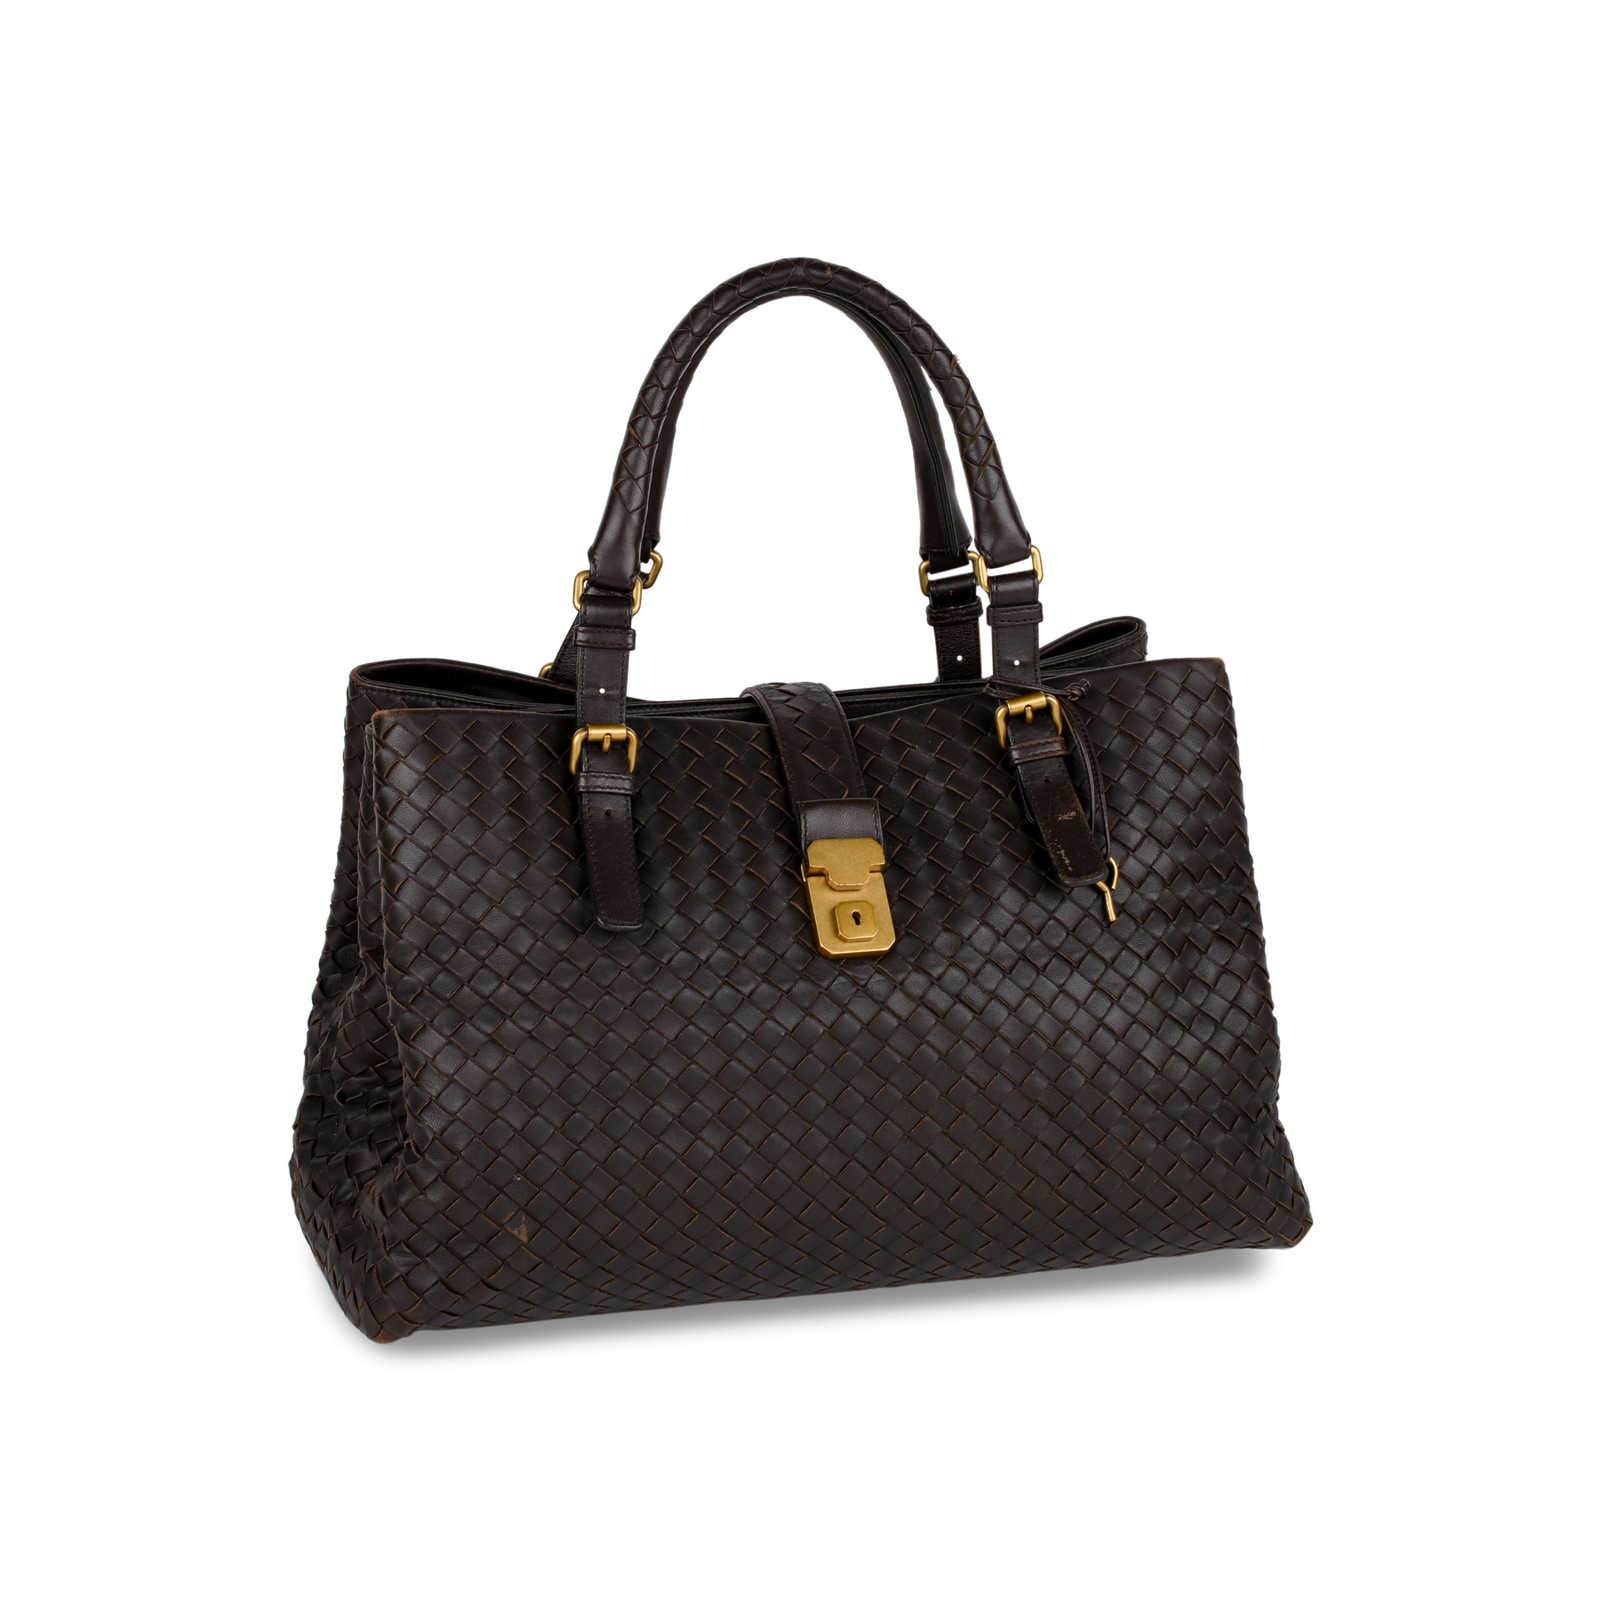 efe6a026b3 ... Authentic Second Hand Bottega Veneta Intrecciato Roma Tote  (PSS-414-00005) ...